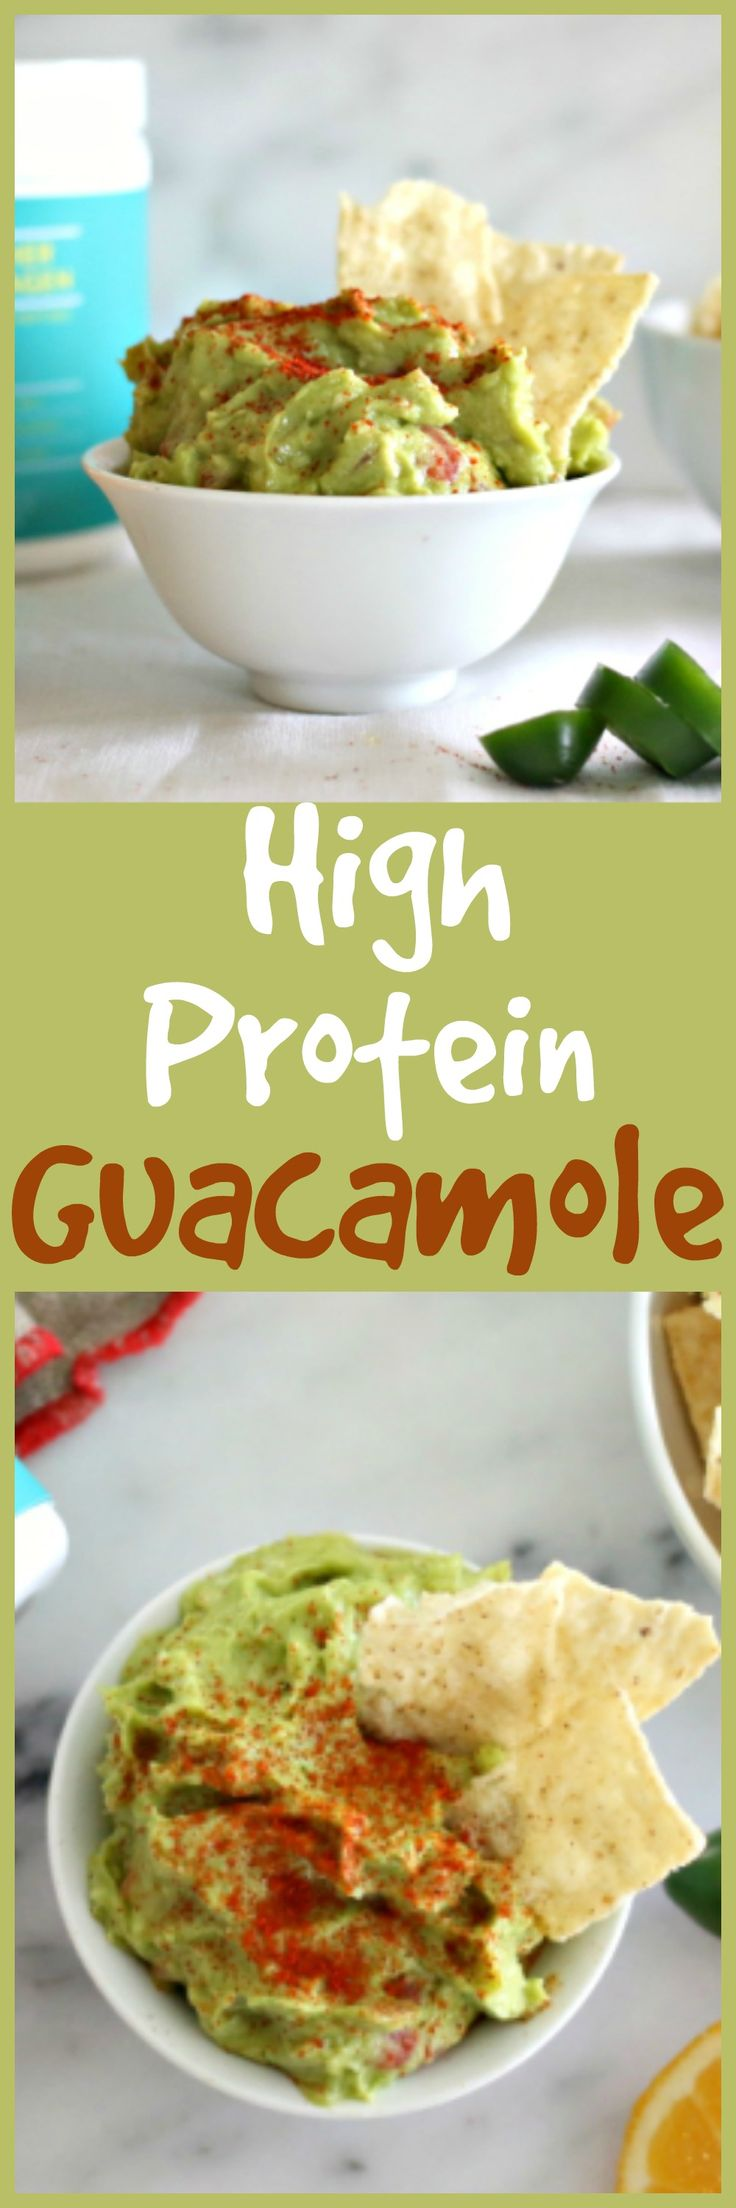 http://www.furtherfood.com/recipe/quick-high-protein-easy-guacamole-further-collagen/